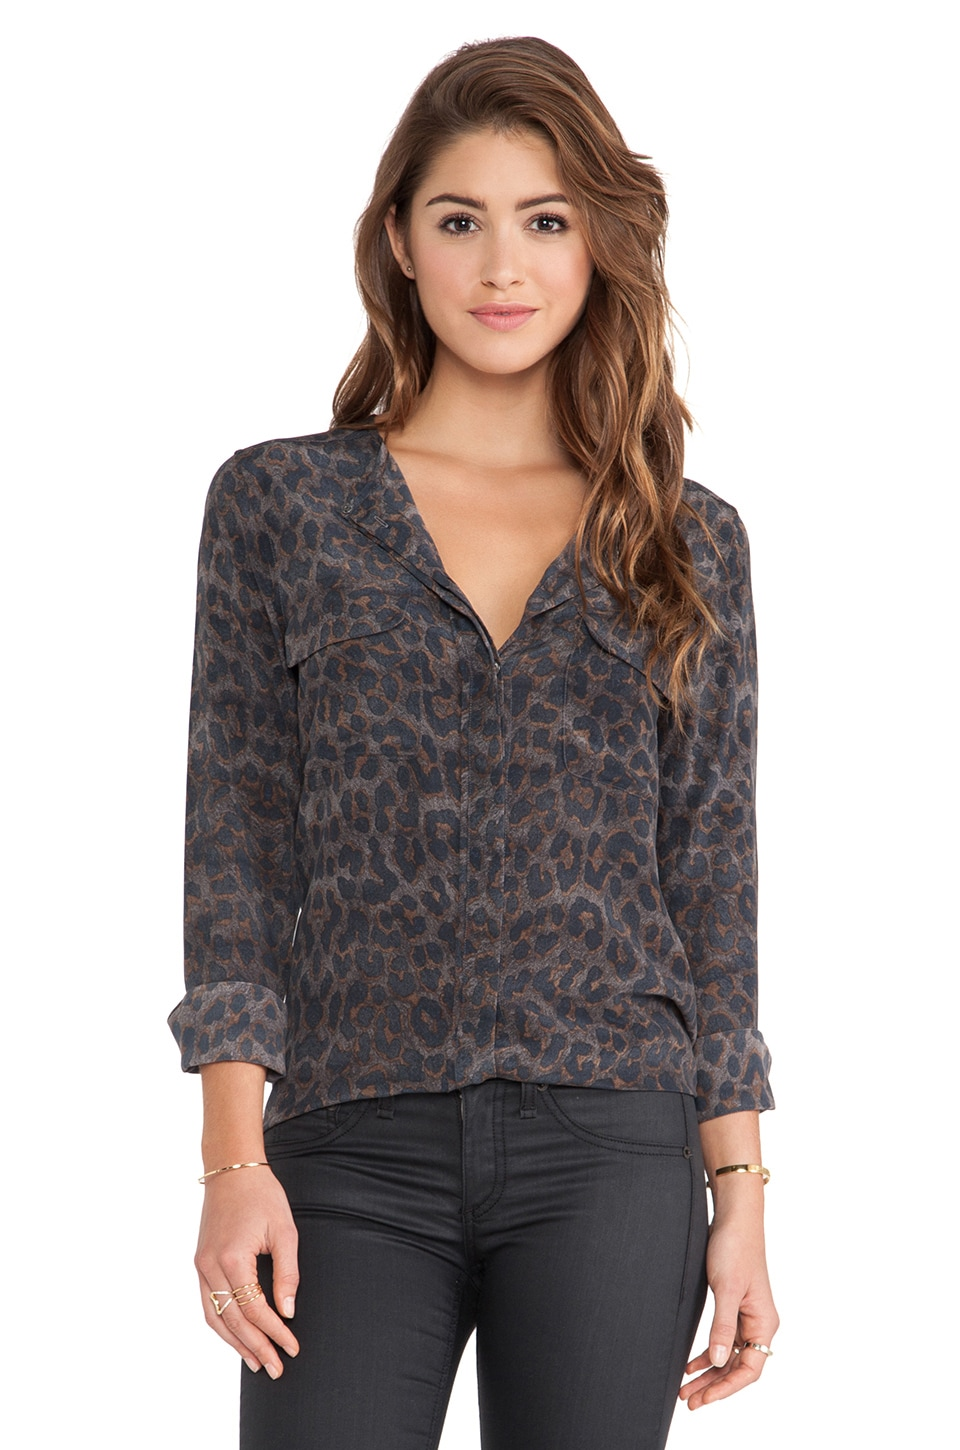 Equipment Lynn Mischievous Leopard Printed Blouse in Gunmetal